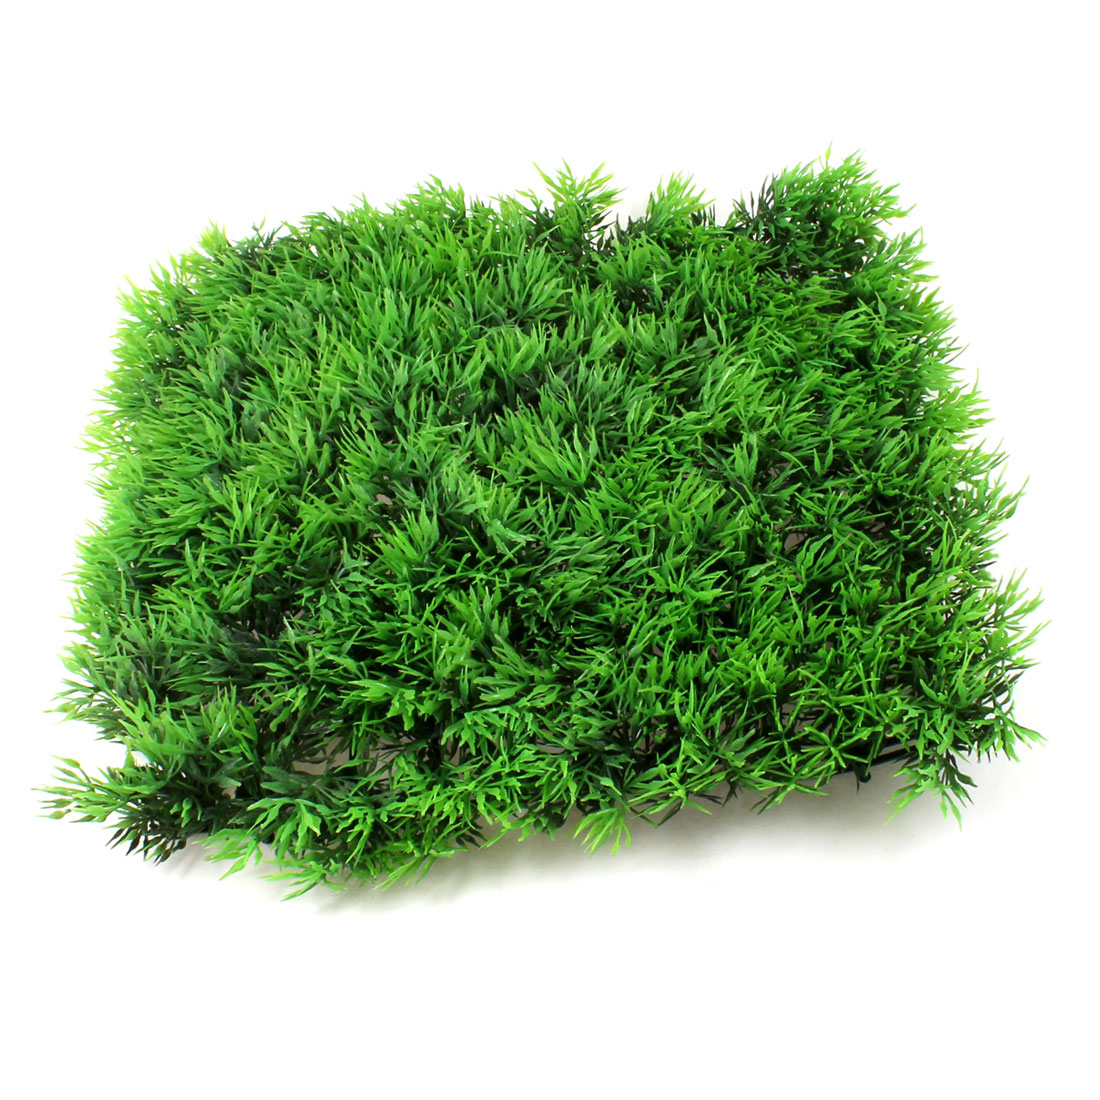 "Plastic Green Manmade Lawn Decor for Aquarium 9.4"" x 9.4"""